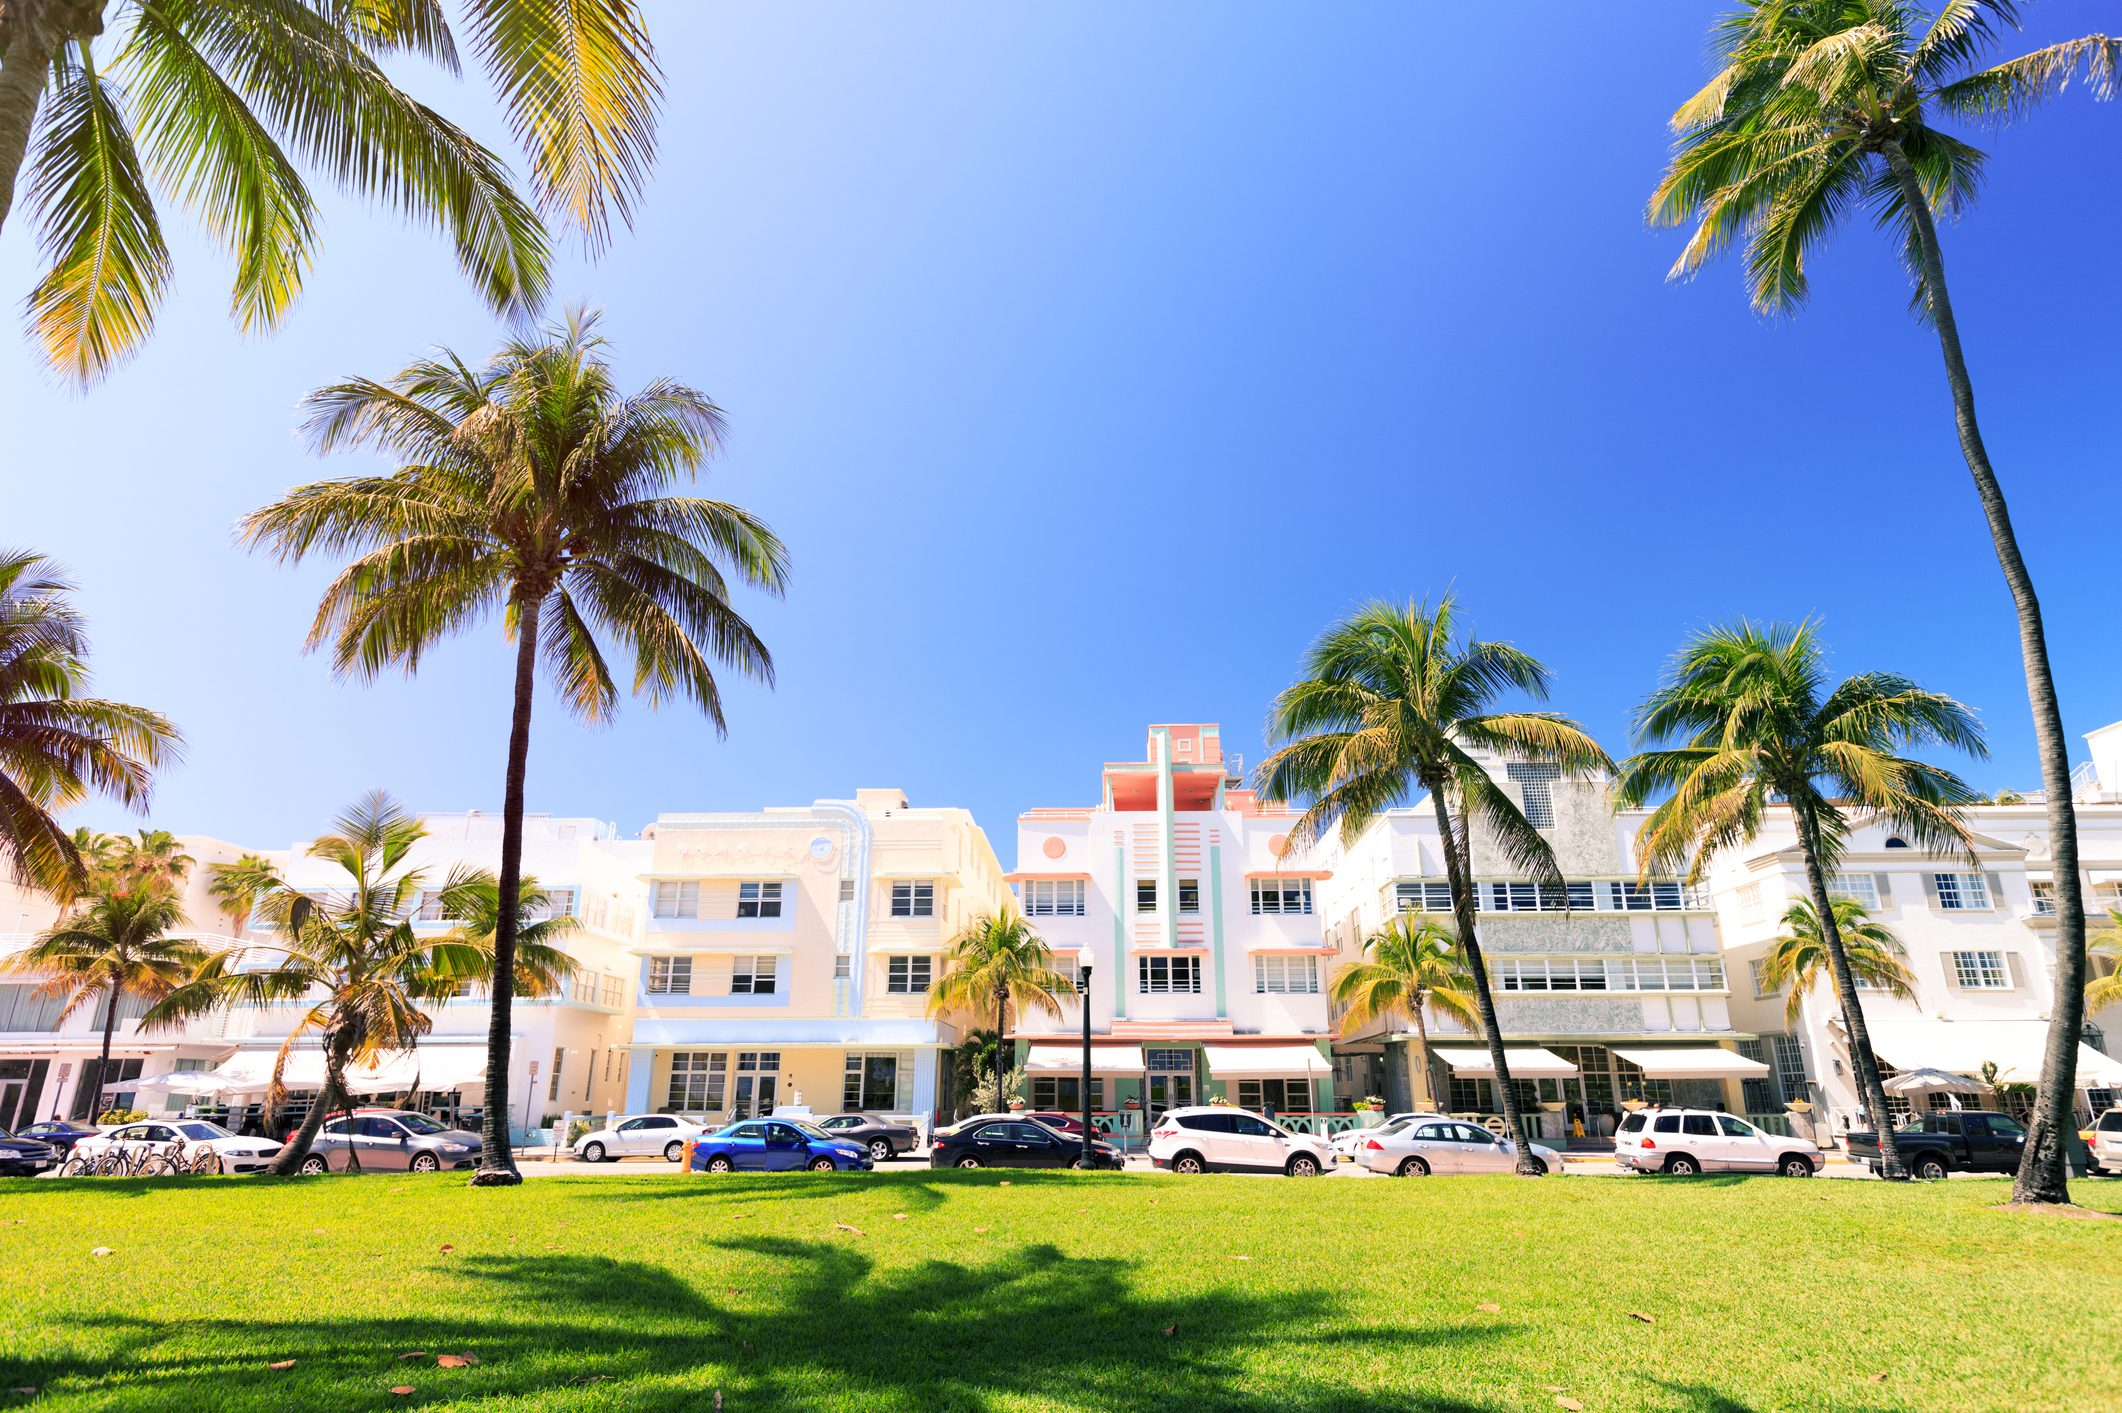 Art Deco buildings and palm trees on Ocean Drive in South Beach, Miami, Florida